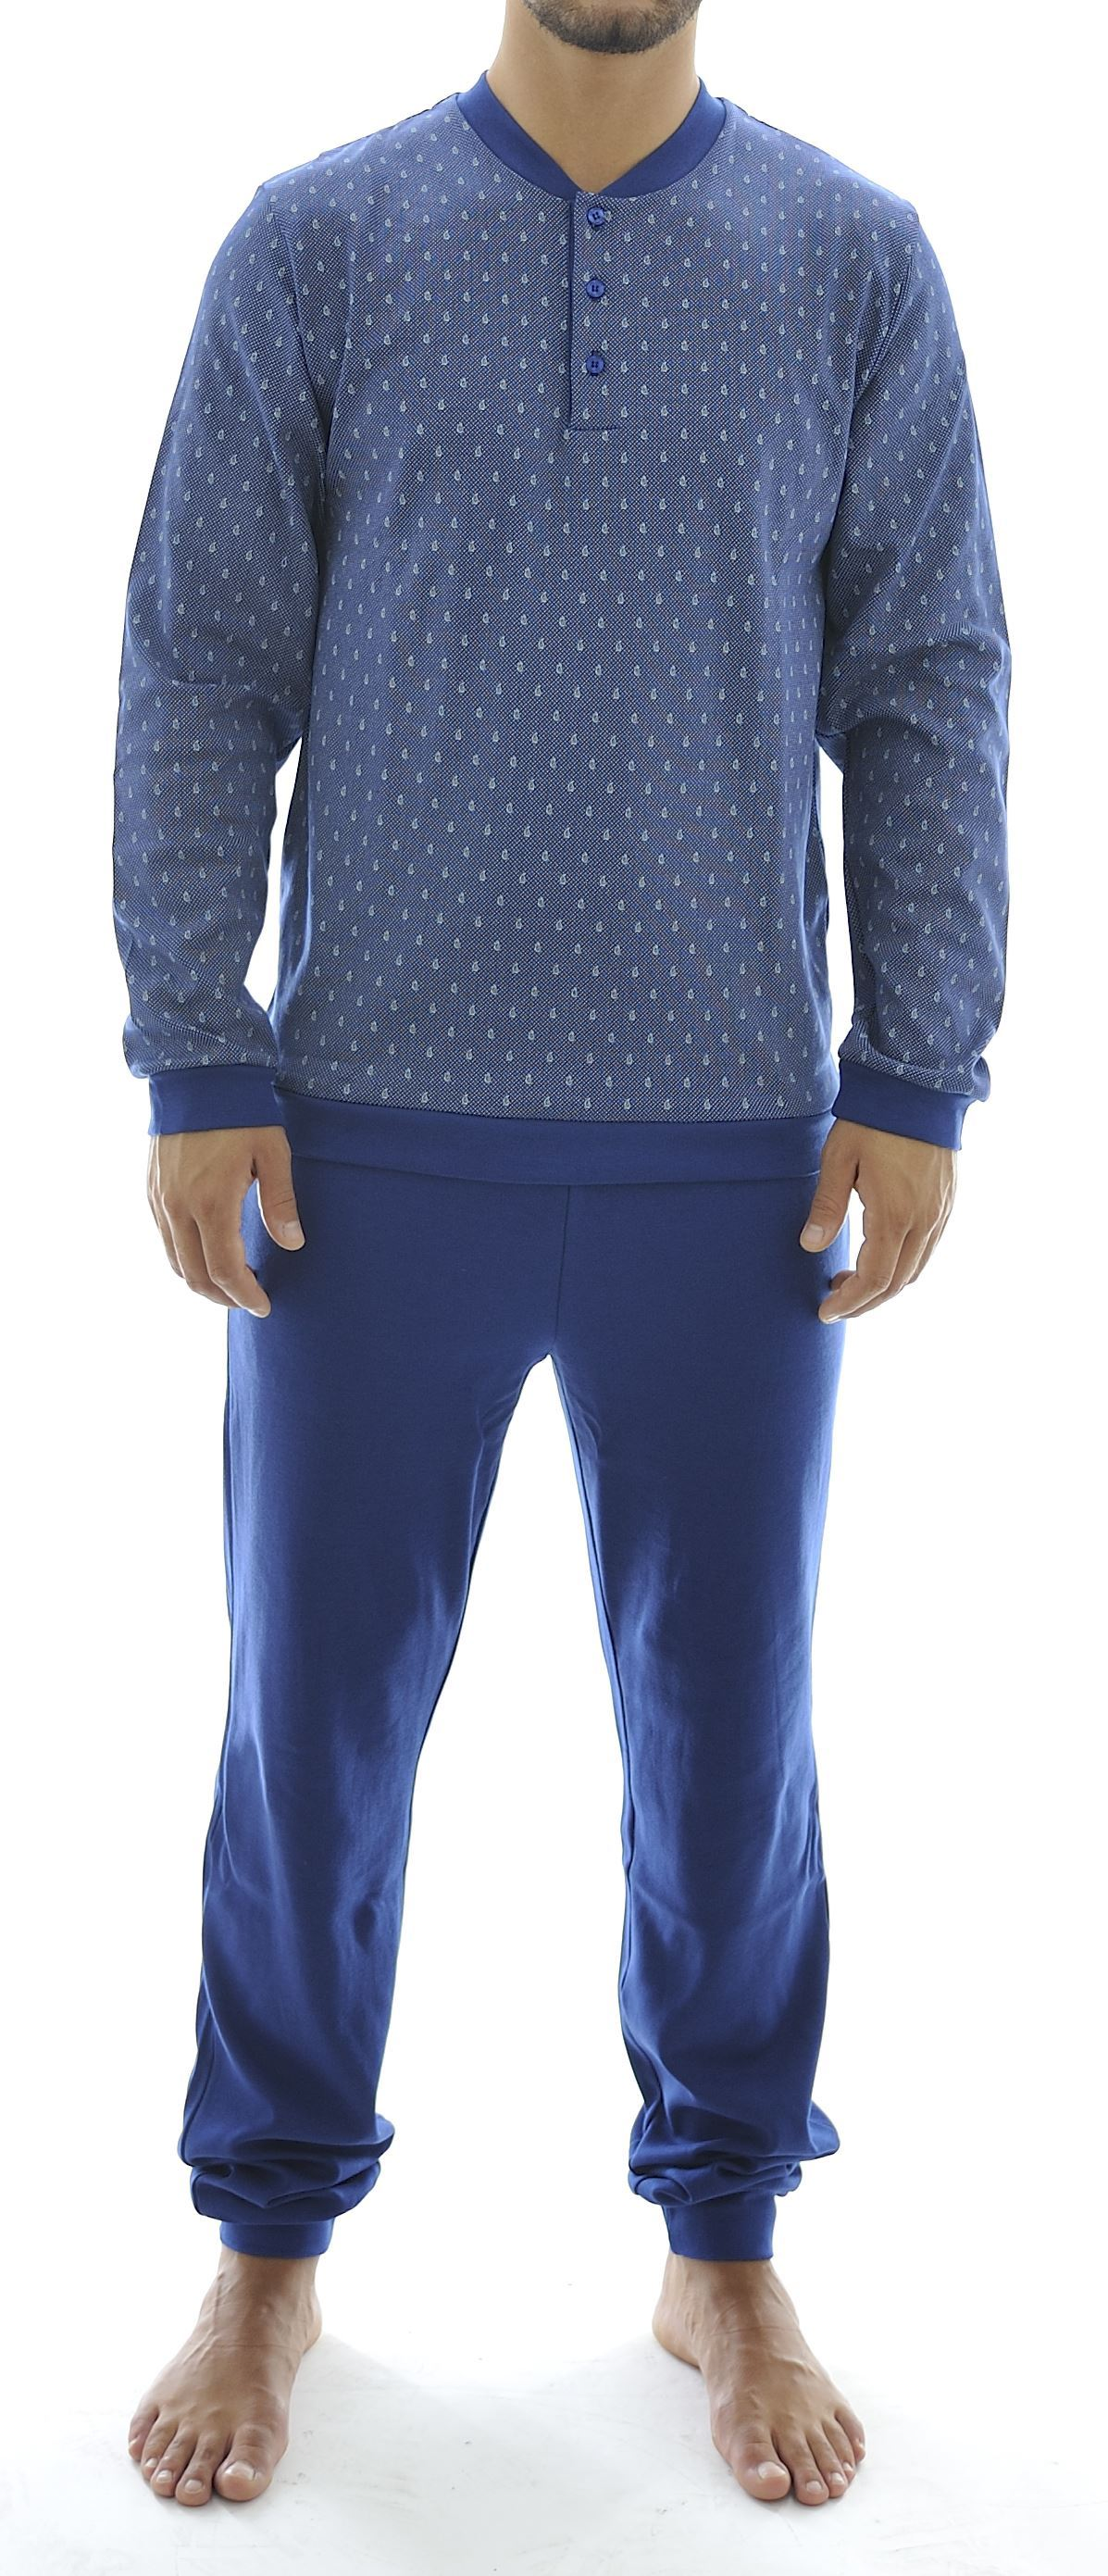 Picture of Men's pyjamas, with 3 buttons, no collar